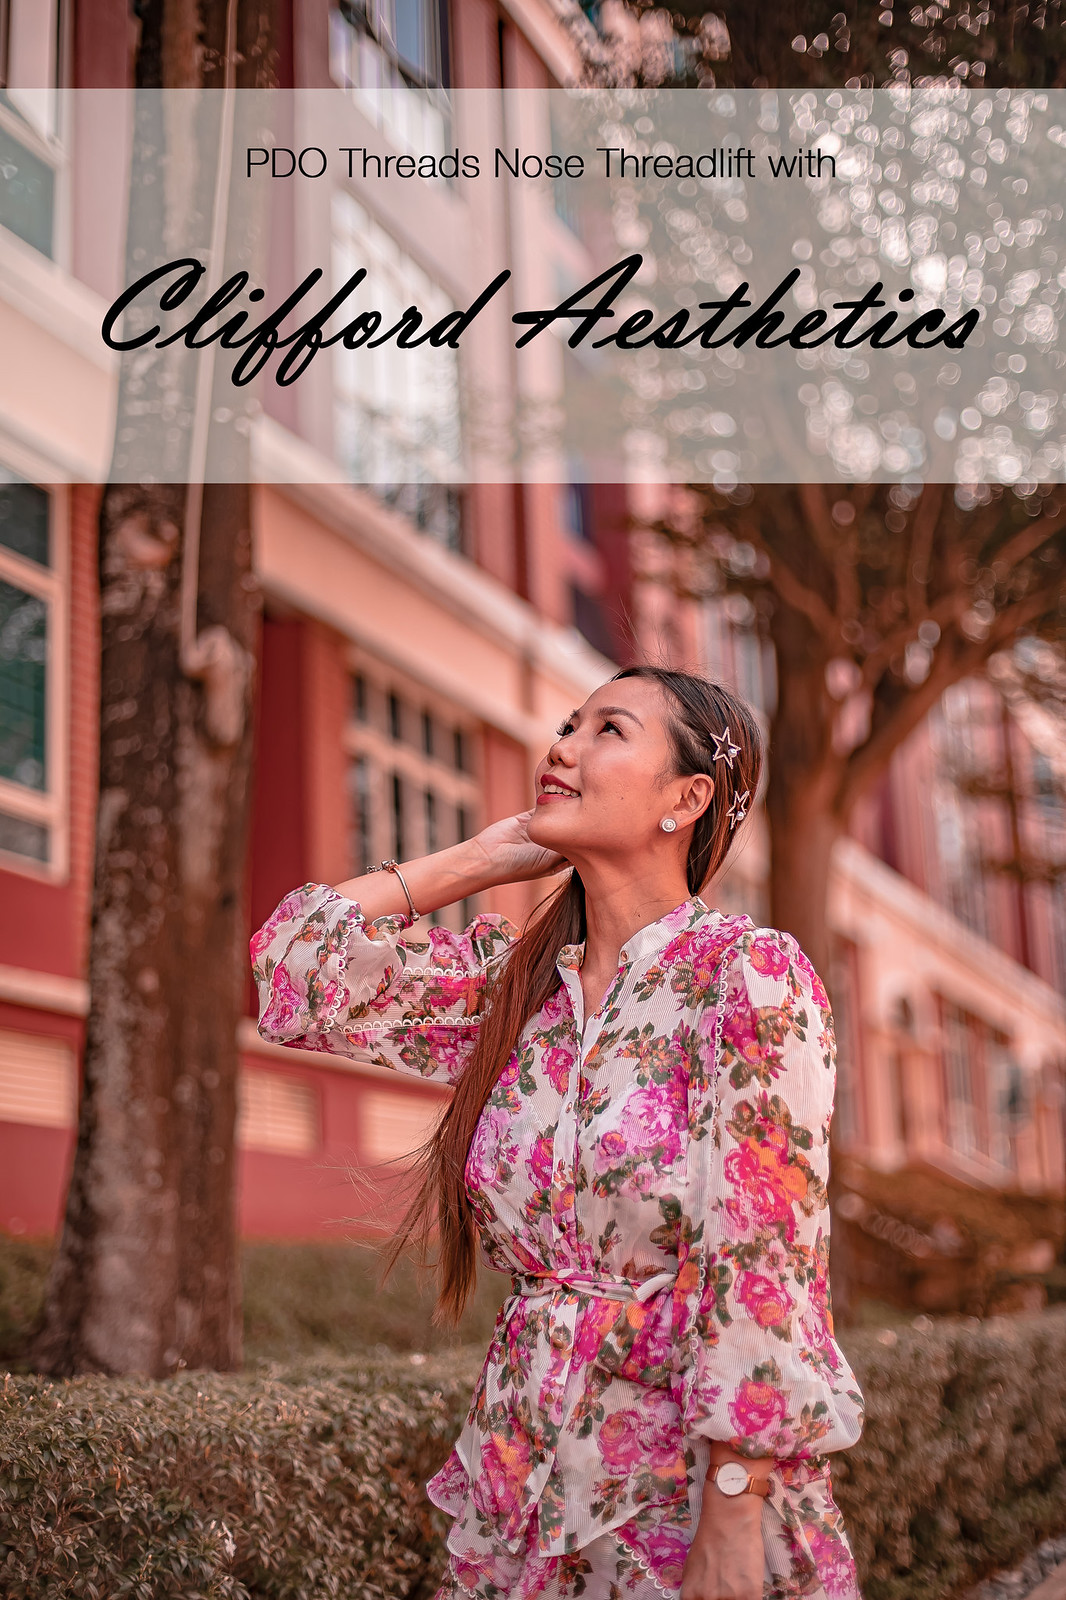 [Beauty] PDO Threads Nose Threadlift with Clifford Aesthetics